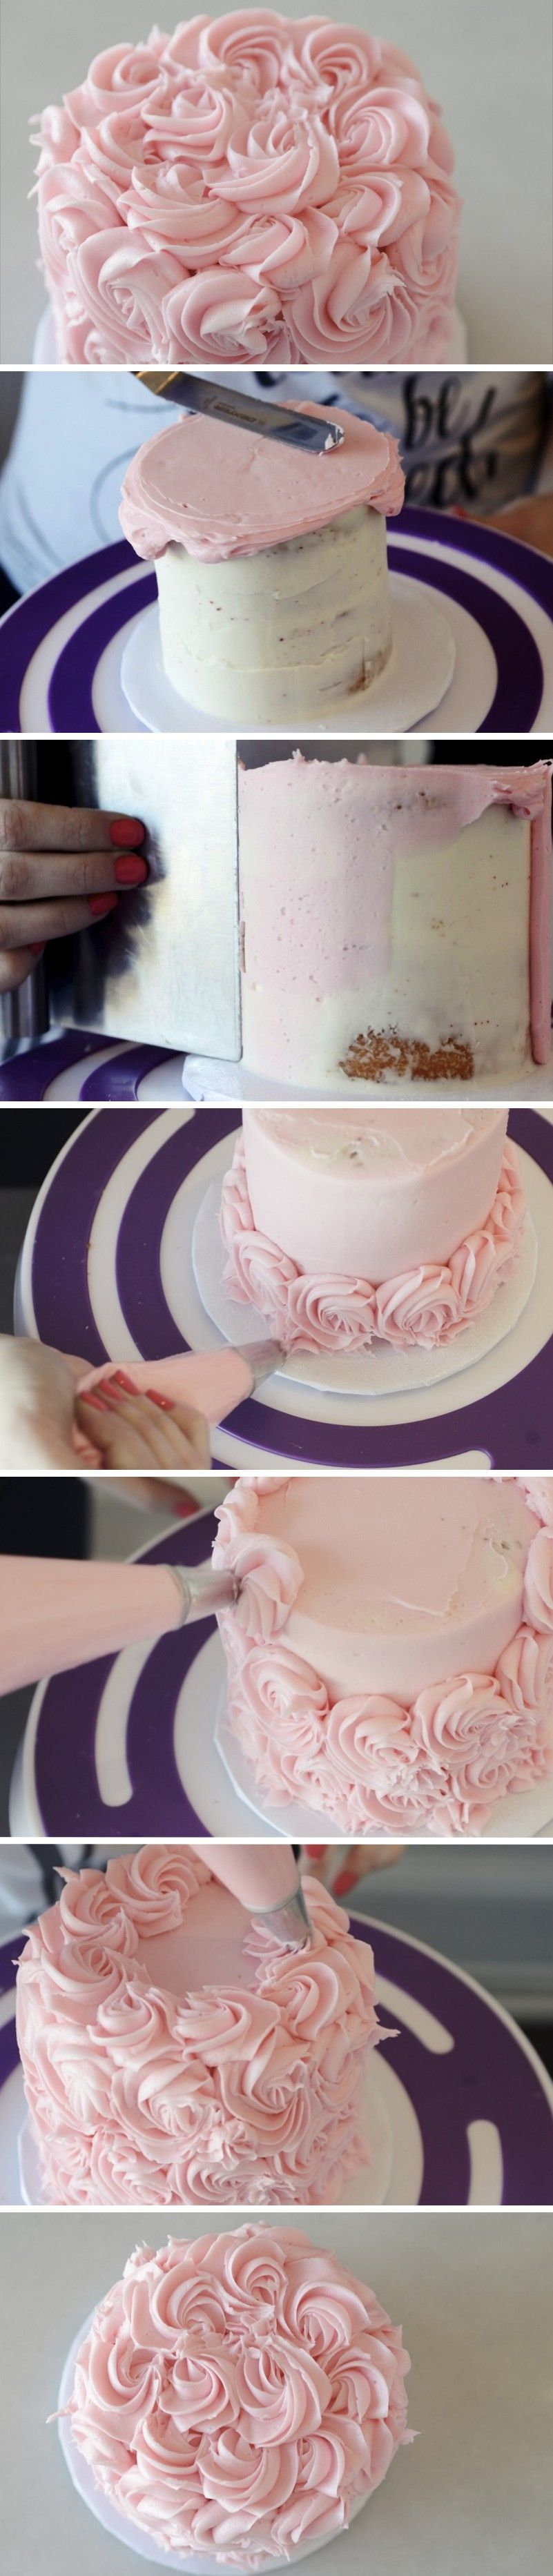 How to Frost a Rose Cake Rose cake Frosting and Rose